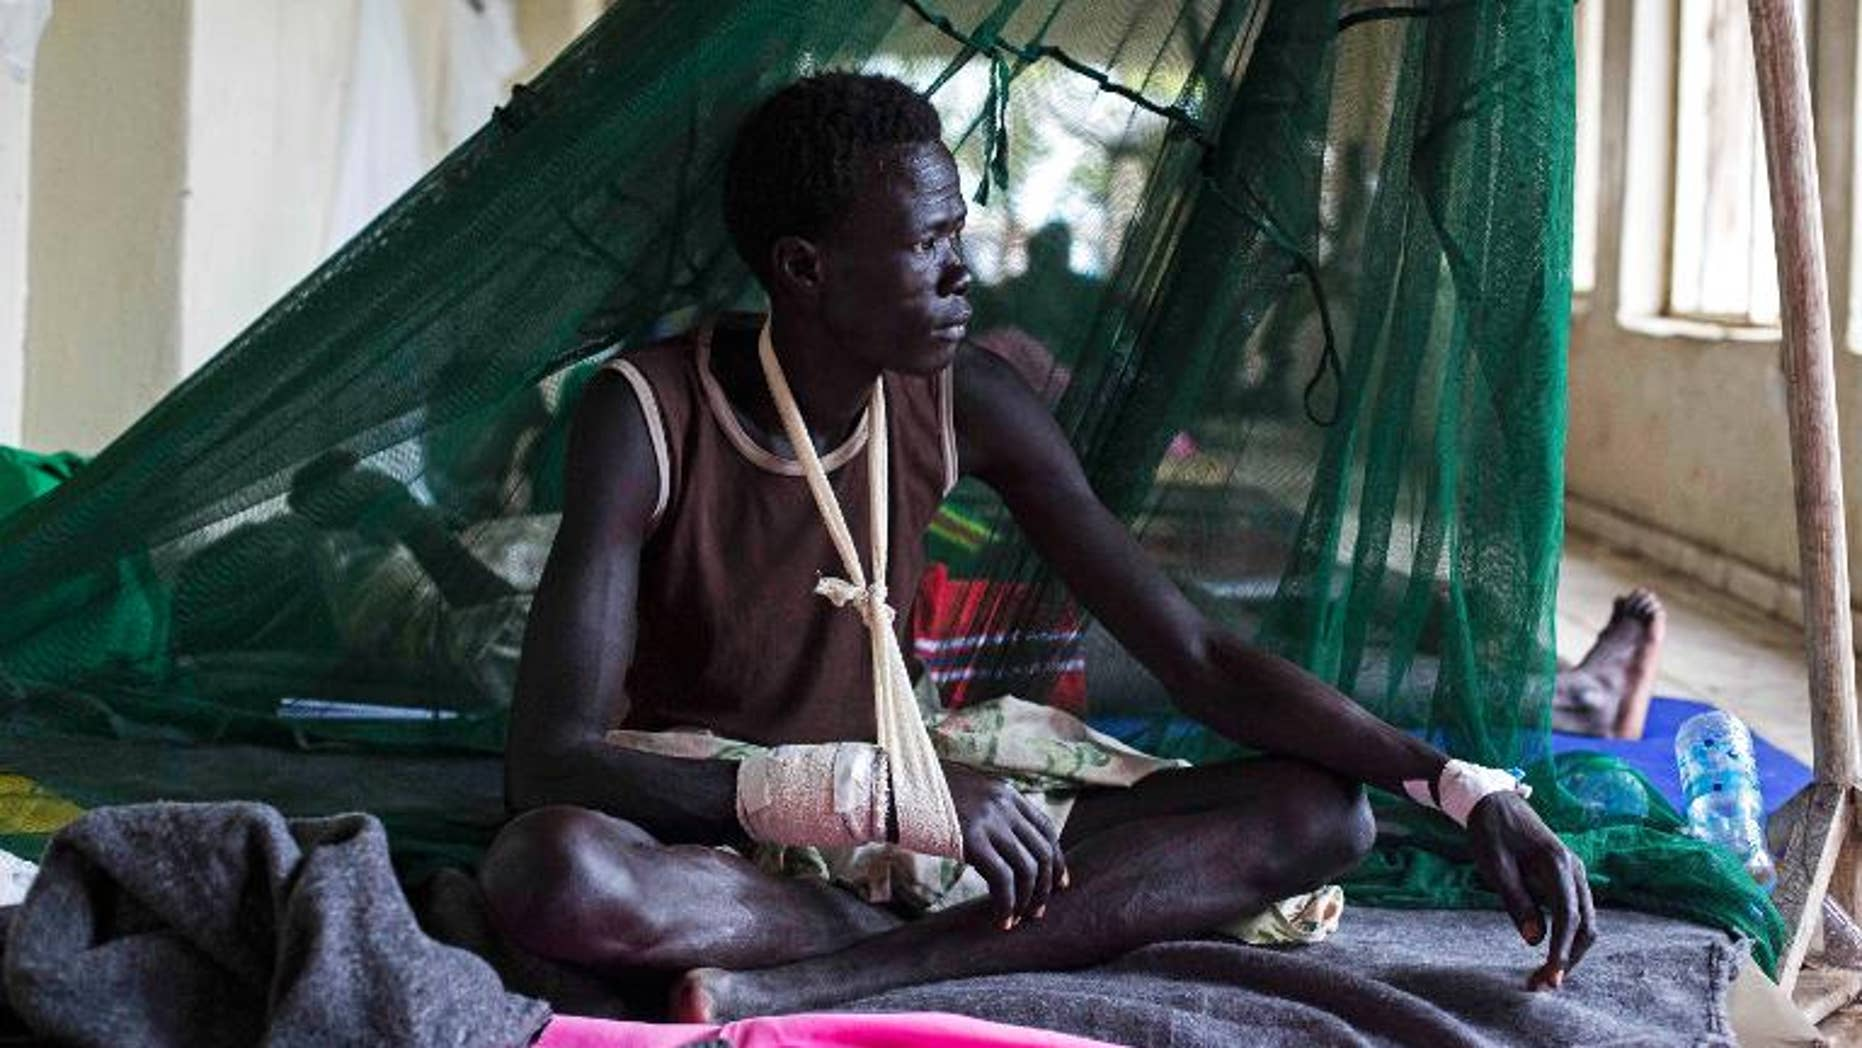 A man injured during tribal clashes sits in a hospital in Bor, South Sudan on July 15.